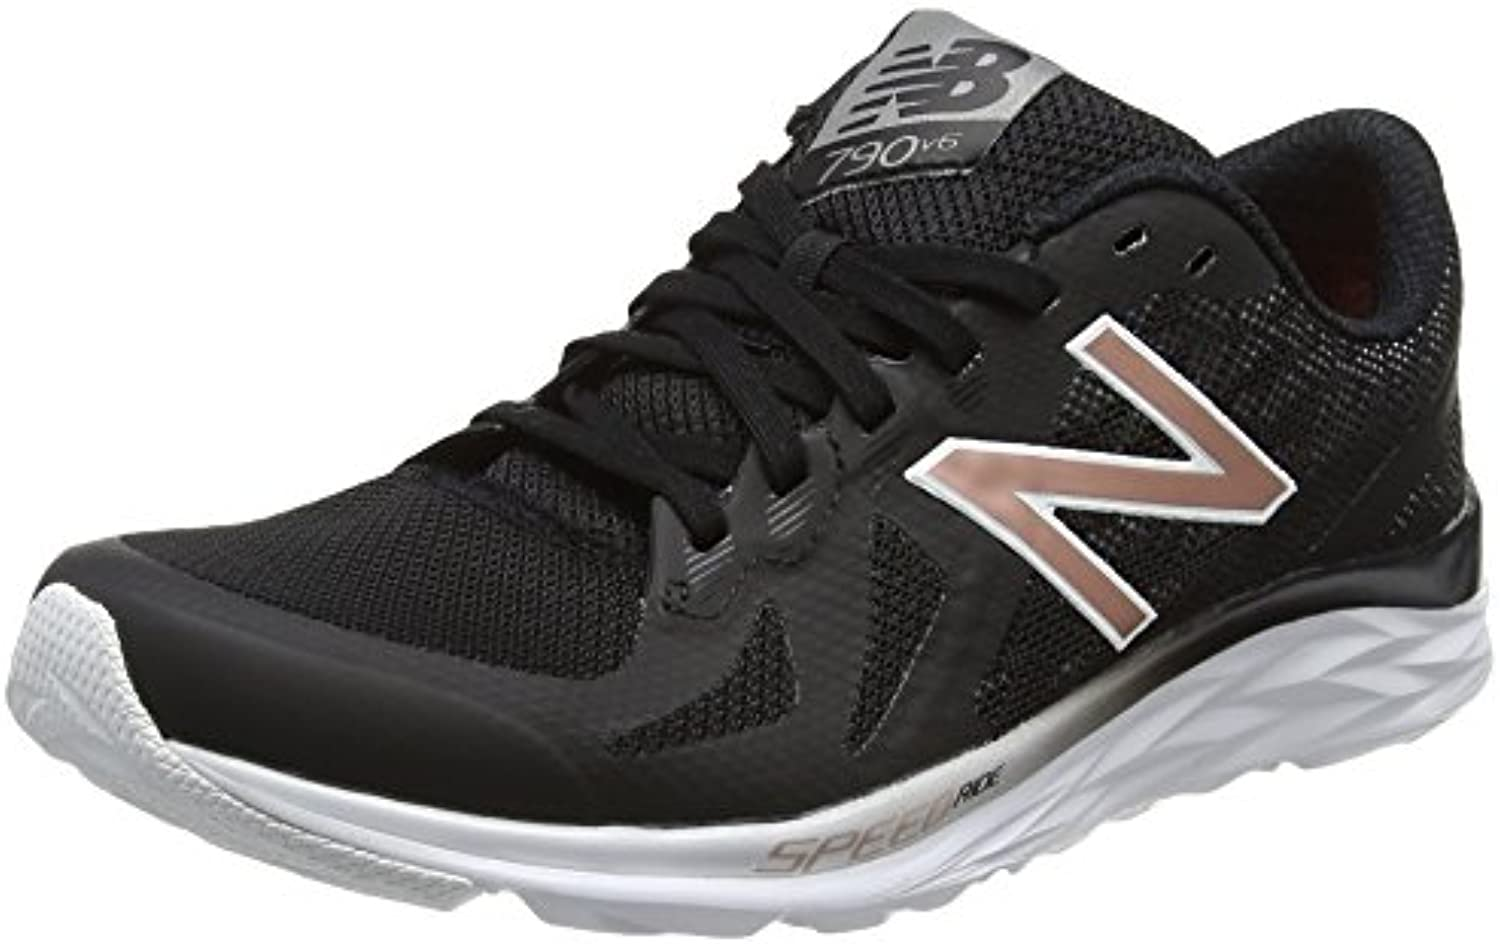 New Balance 790v6, Scarpe Sportive Indoor Donna | Up-to-date Styling